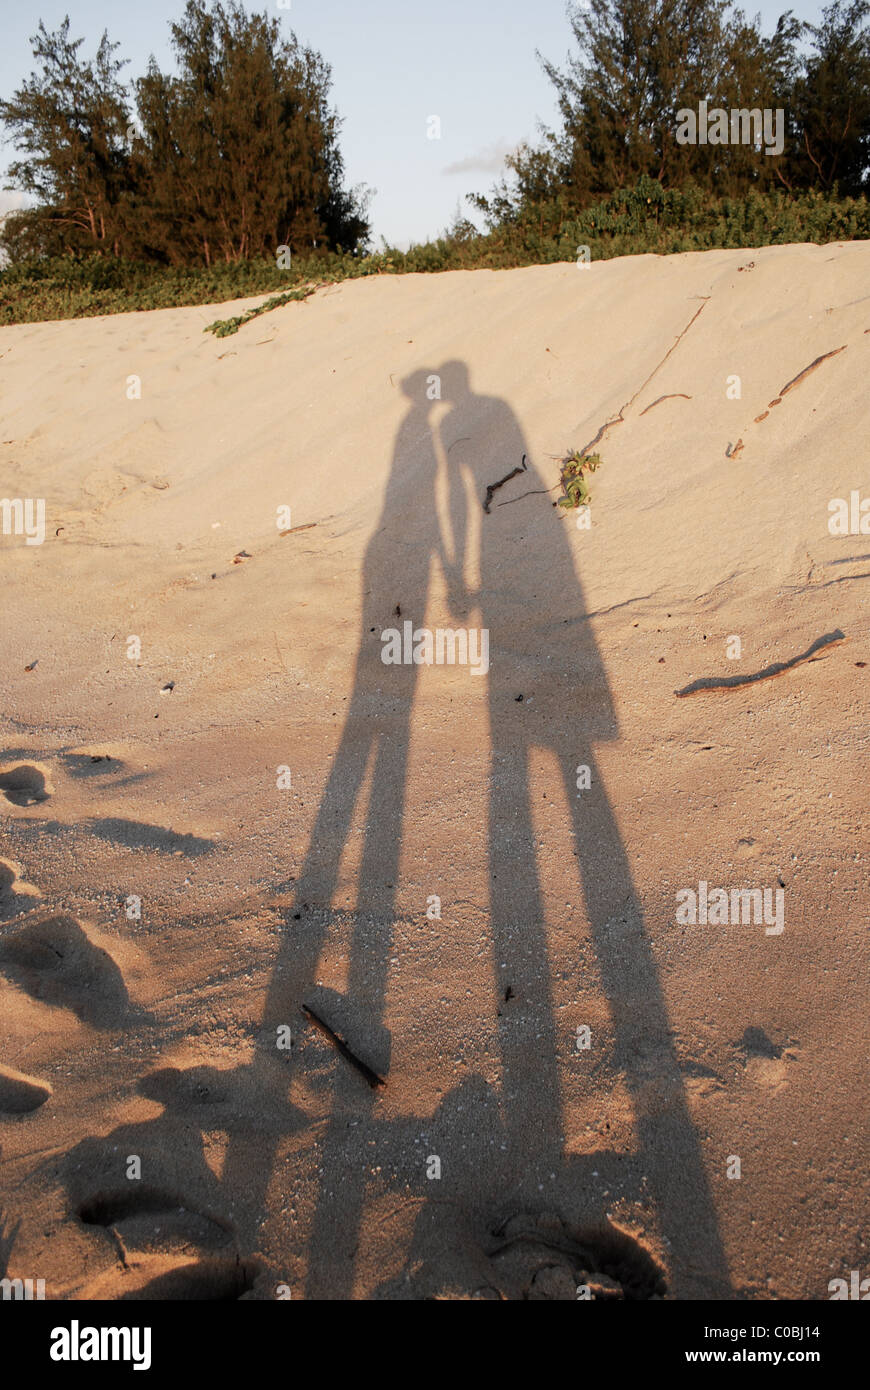 Shadow of couple kissing on beach. Holding hands and kissing just before sunset. Stock Photo